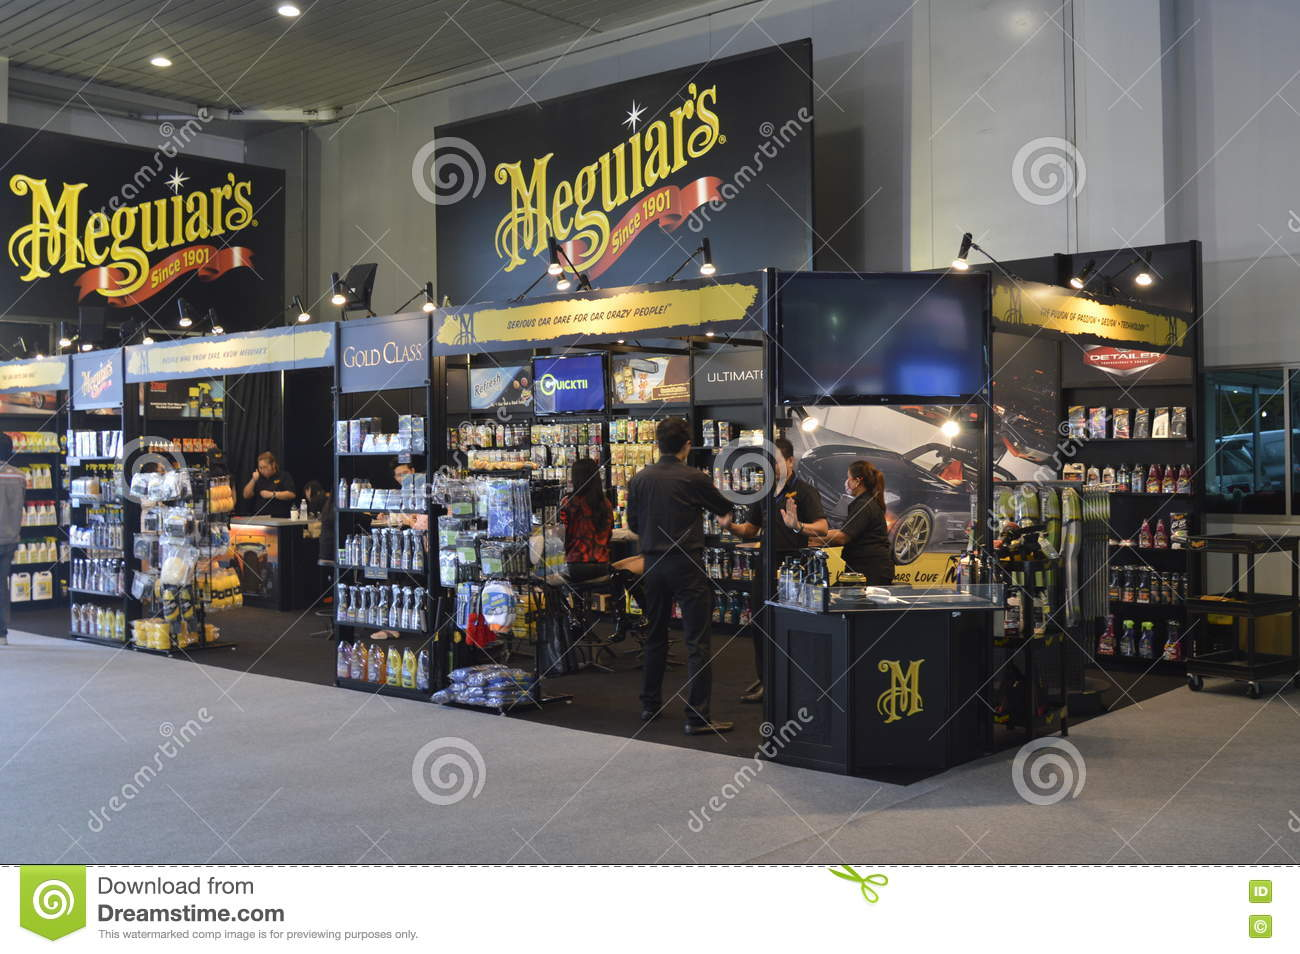 Meguiars Car Care Products Shop Of FAST Auto Show Thailand - Show car products